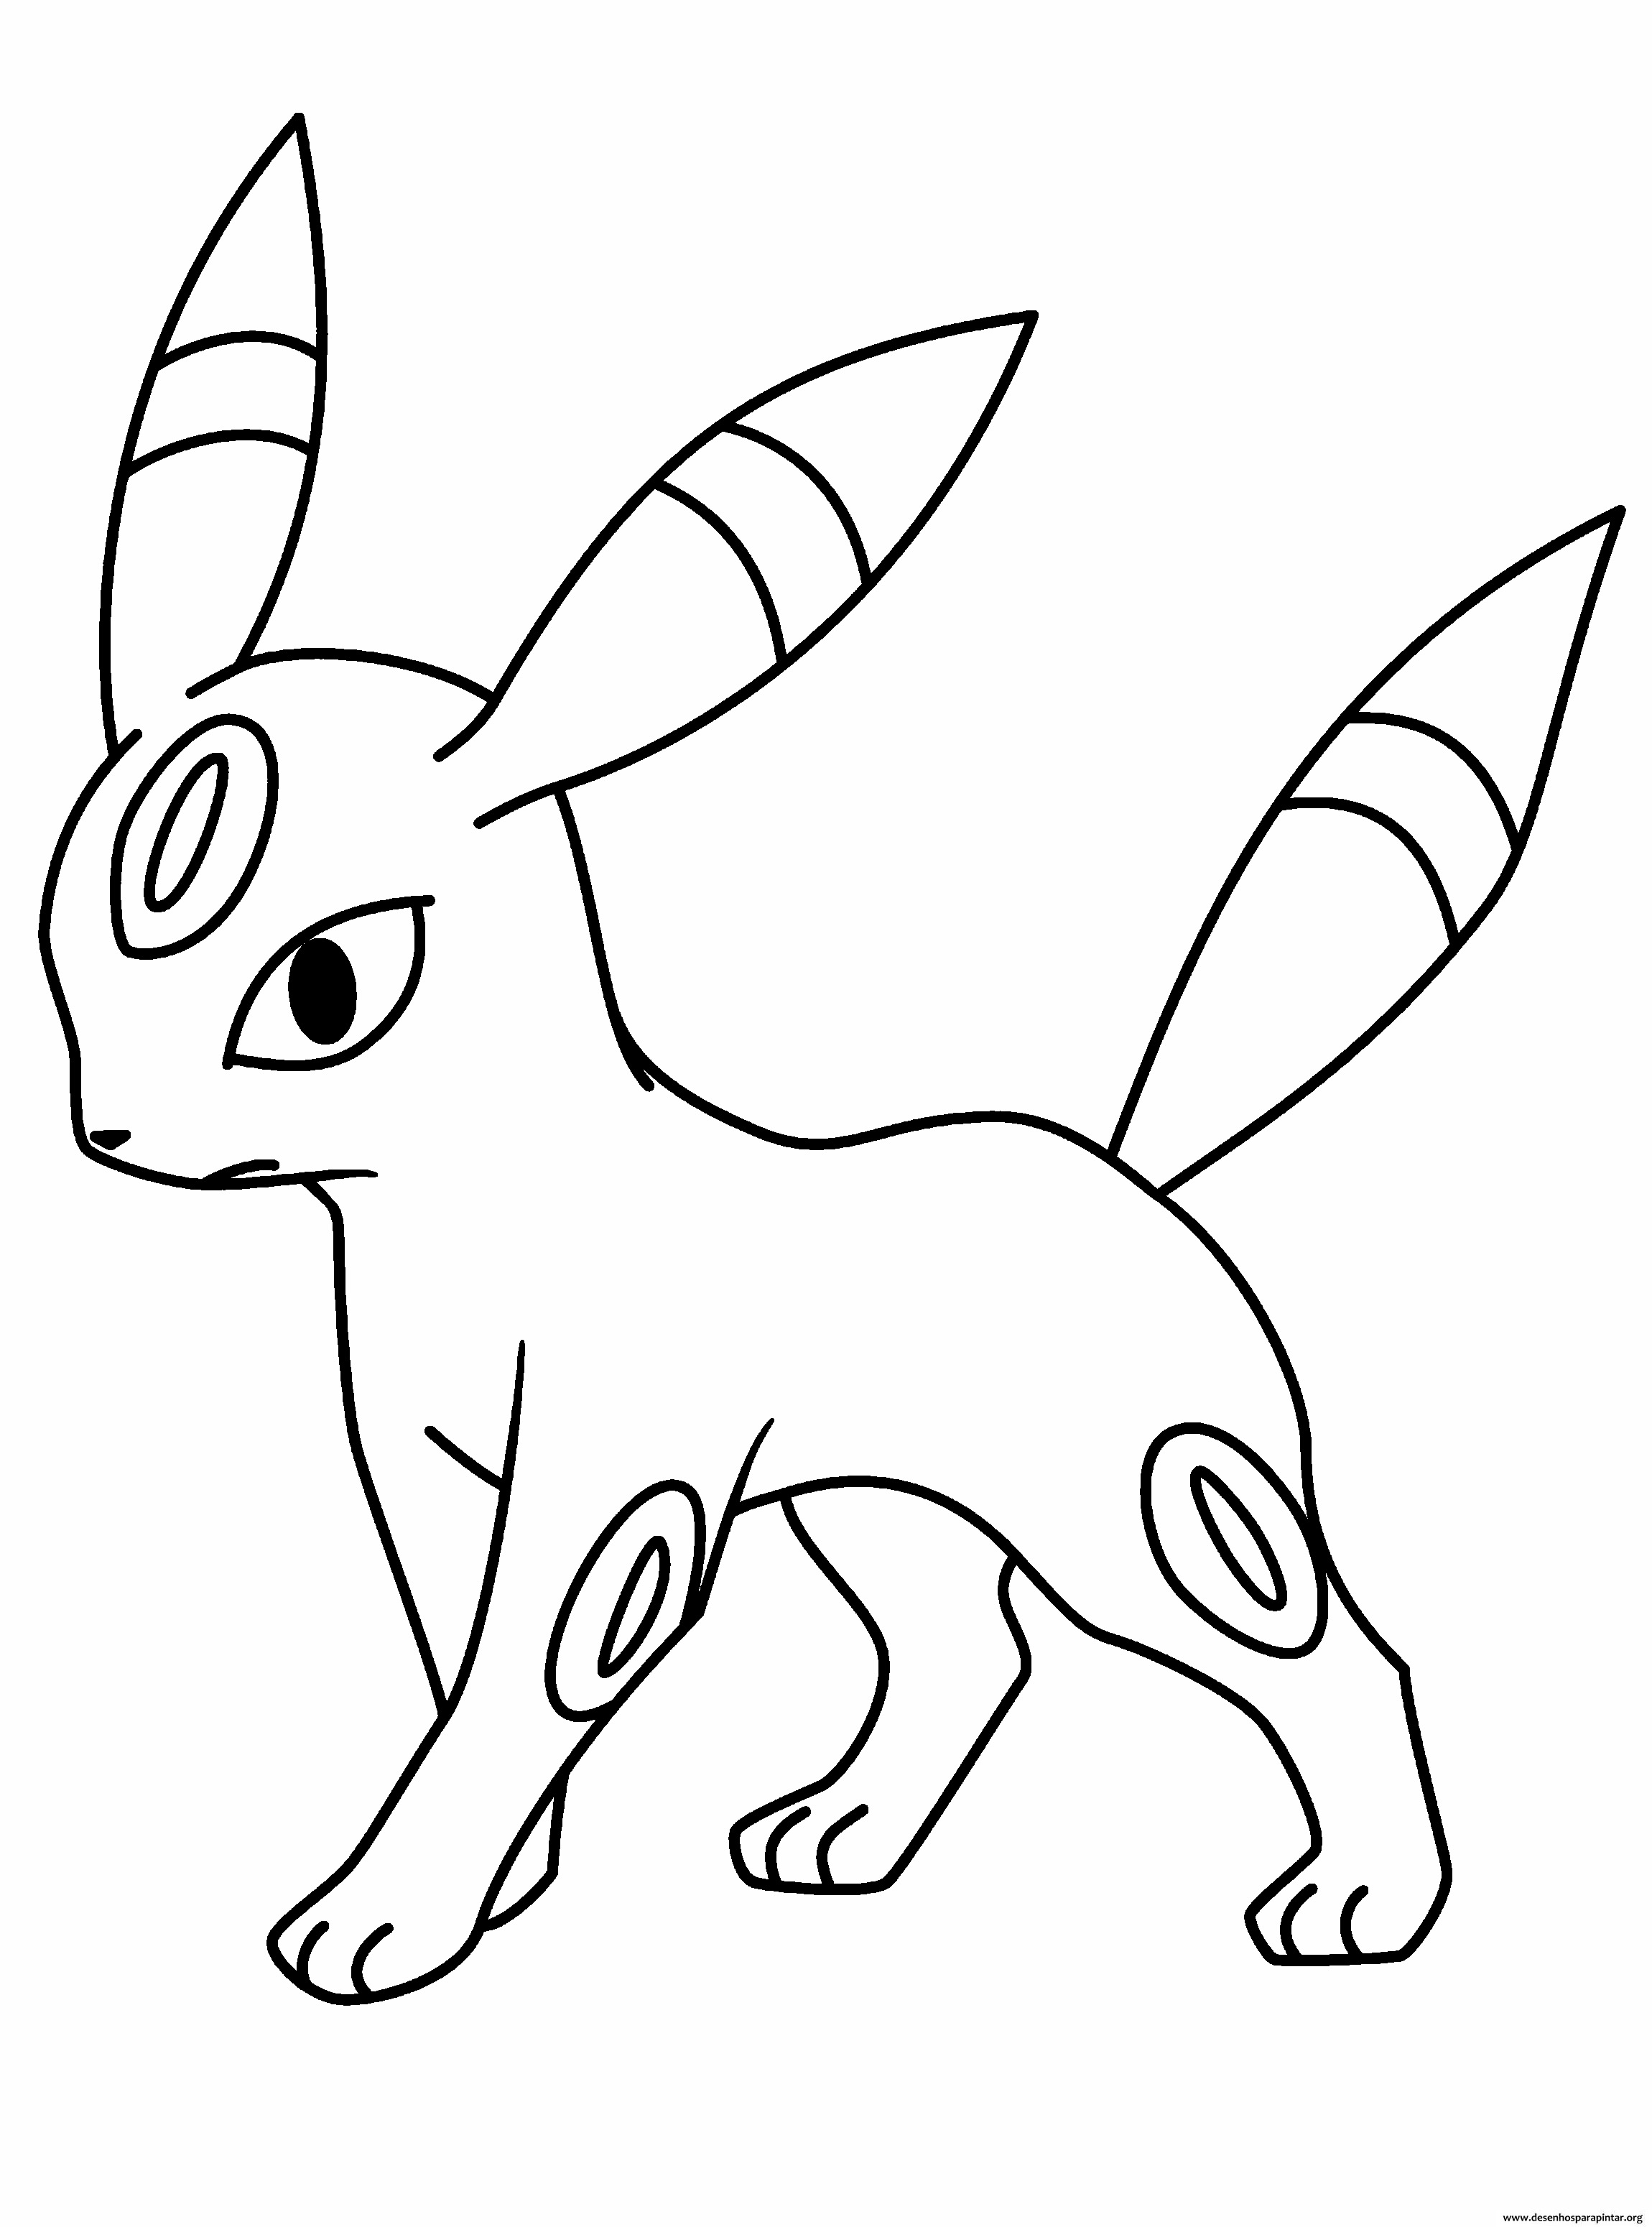 th?id=OIP.J4 HqqtvMwDwjjDrFZl_kwDeEs&pid=15.1 together with pokemon coloring pages on fire pokemon coloring pages also with fire pokemon coloring pages 2 on fire pokemon coloring pages moreover fire pokemon coloring pages 3 on fire pokemon coloring pages further fire pokemon coloring pages 4 on fire pokemon coloring pages